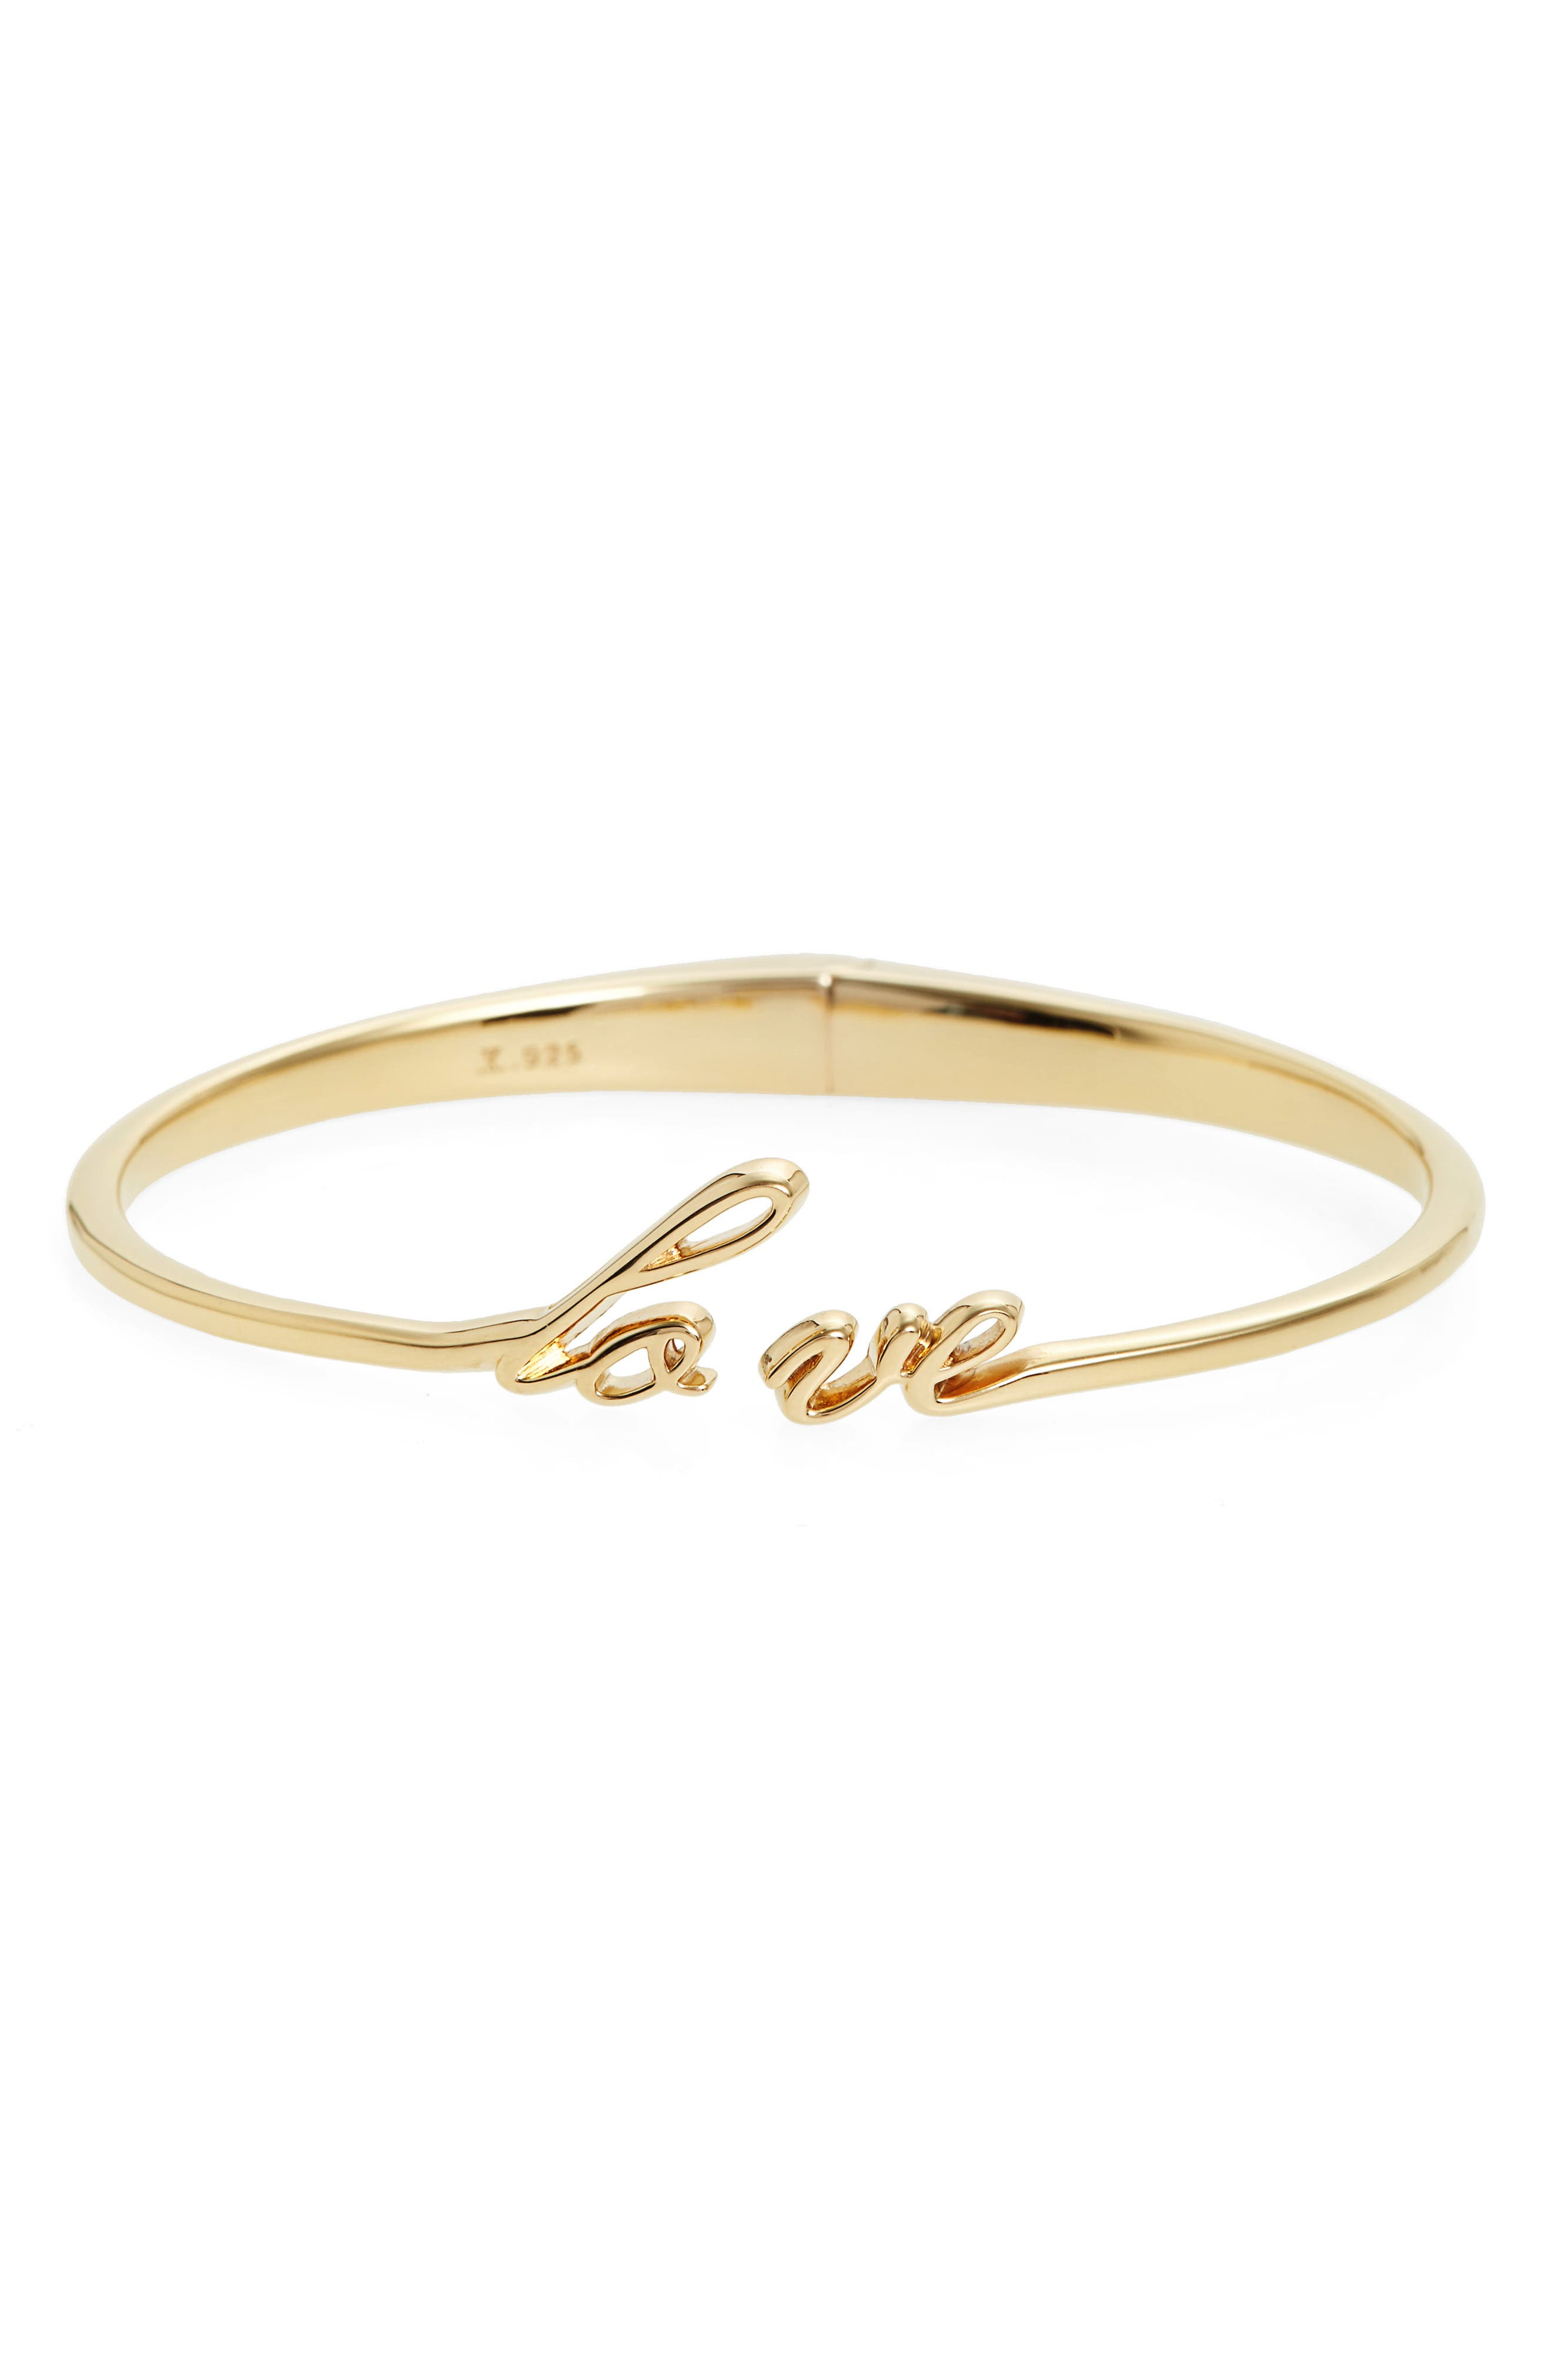 Judith Jack To Love by Love Hinge Bracelet